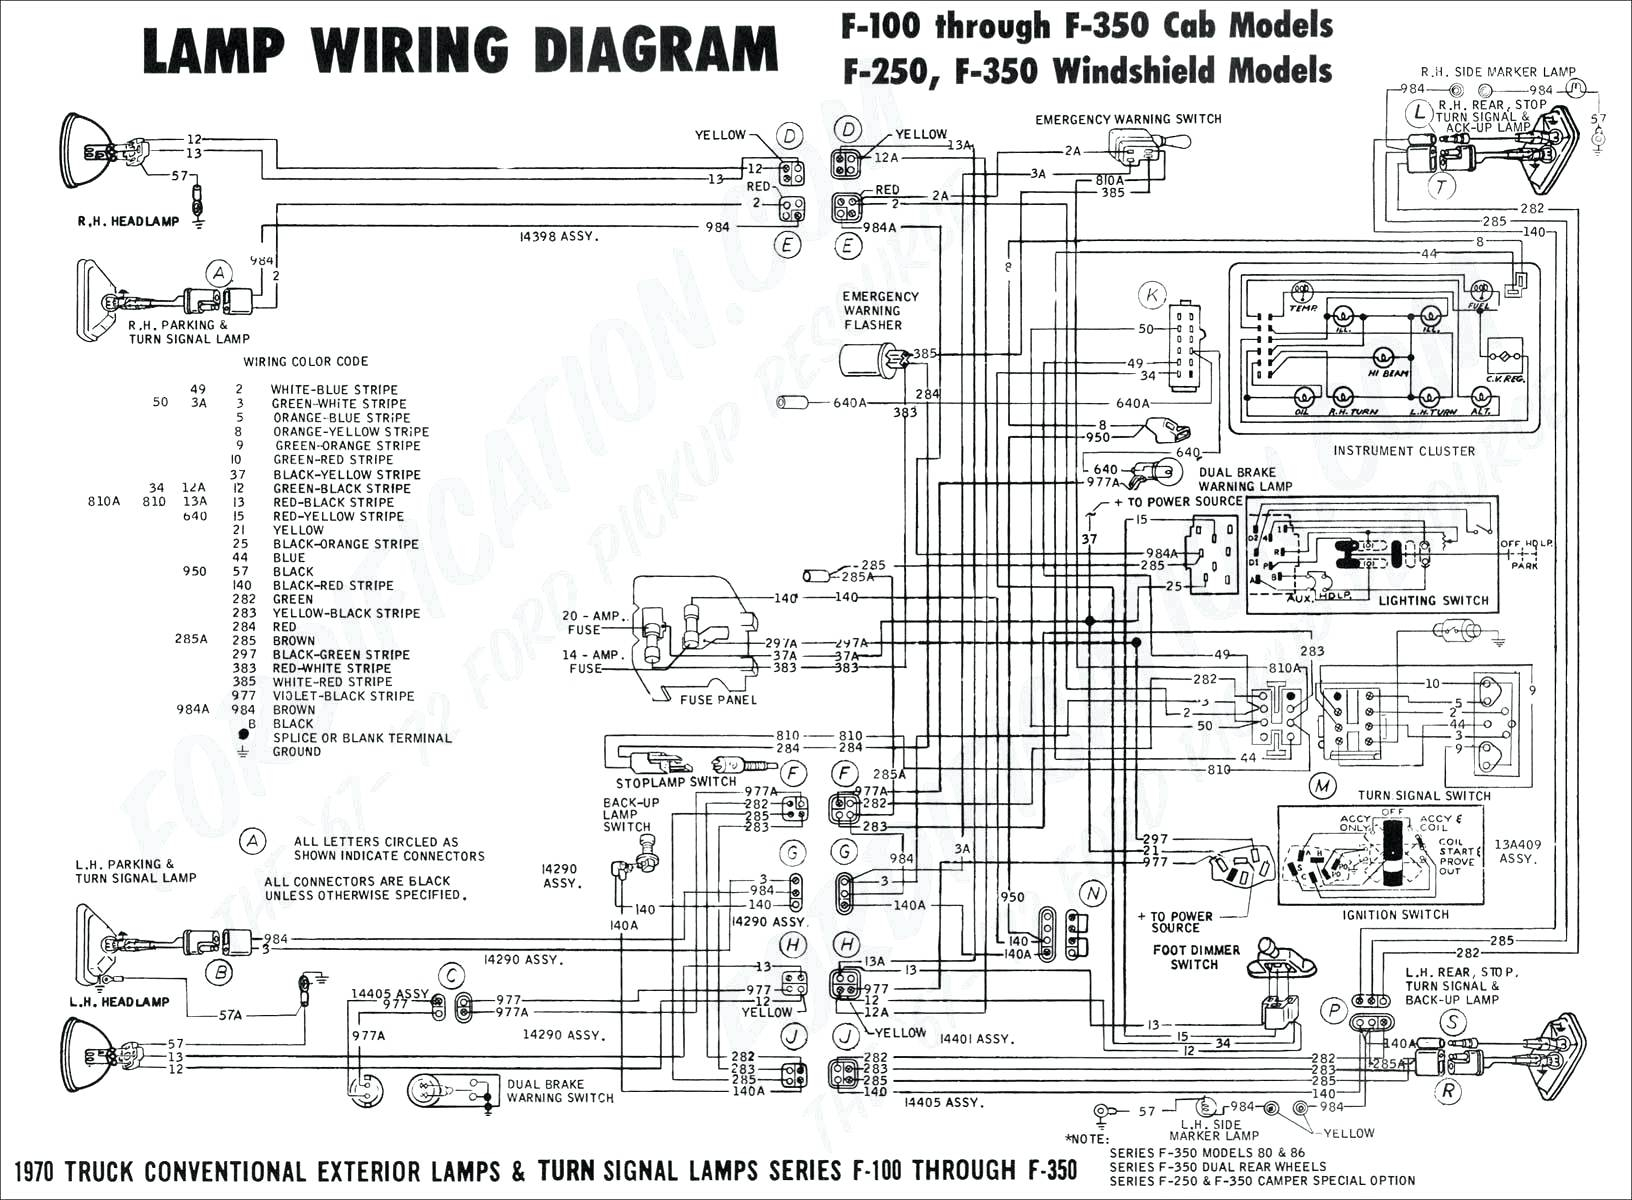 DIAGRAM] 1999 Dodge Trailer Wiring Diagram FULL Version HD Quality Wiring  Diagram - FT5WIRING.CONCESSIONARIABELOGISENIGALLIA.ITconcessionariabelogisenigallia.it